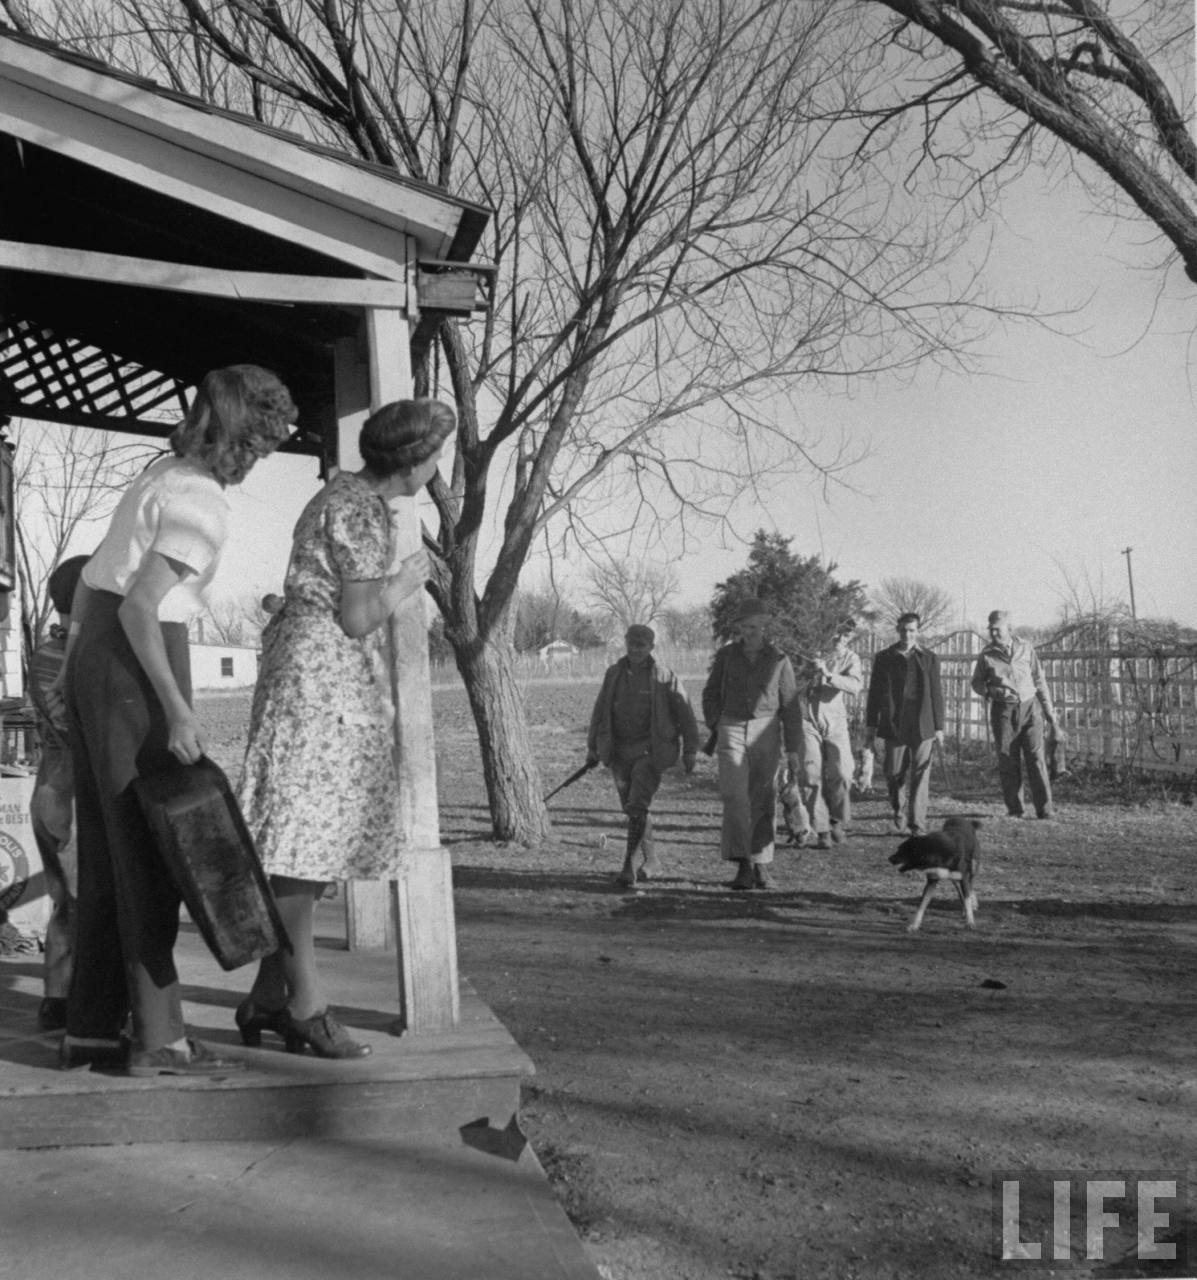 Mrs. James Ferdinand Irwin (2L) standing on porch watching the men in her family, most recently returned fr. service in WWII, carrying home freshly shot rabbits and a cedar tree for Christmas family reunion.© Time Inc. Myron Davis